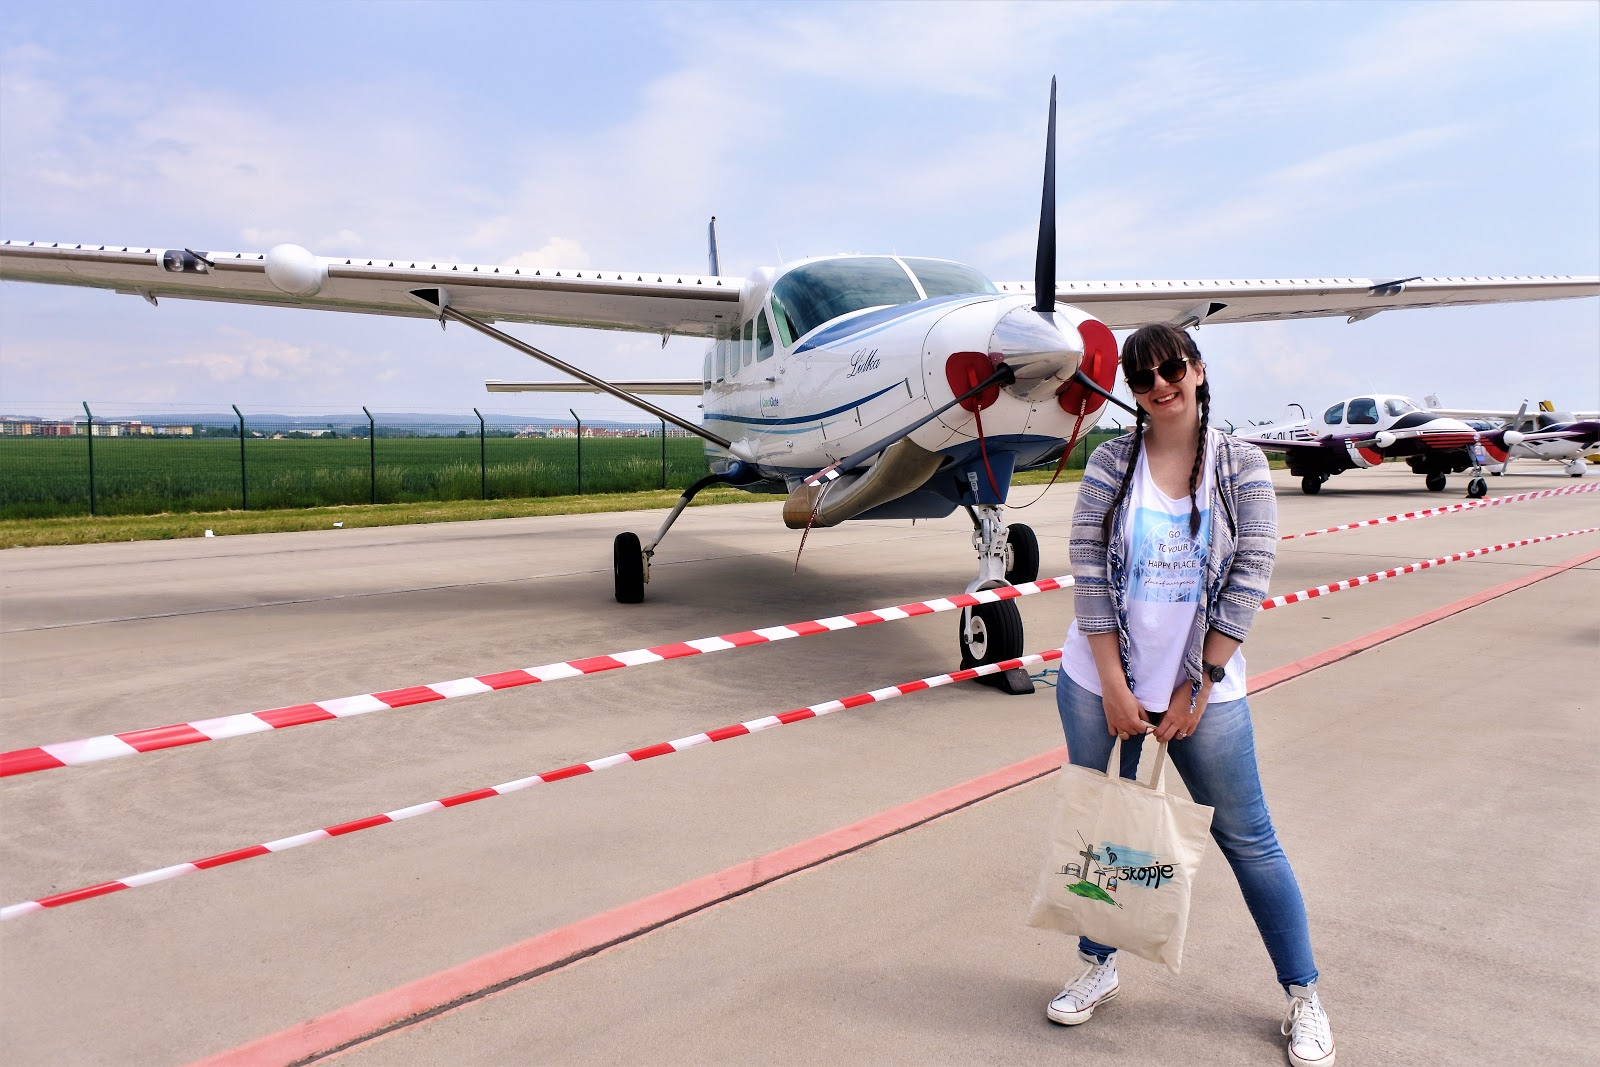 https://sanjaburgundy.blogspot.com/2019/05/we-have-airport-brno.html